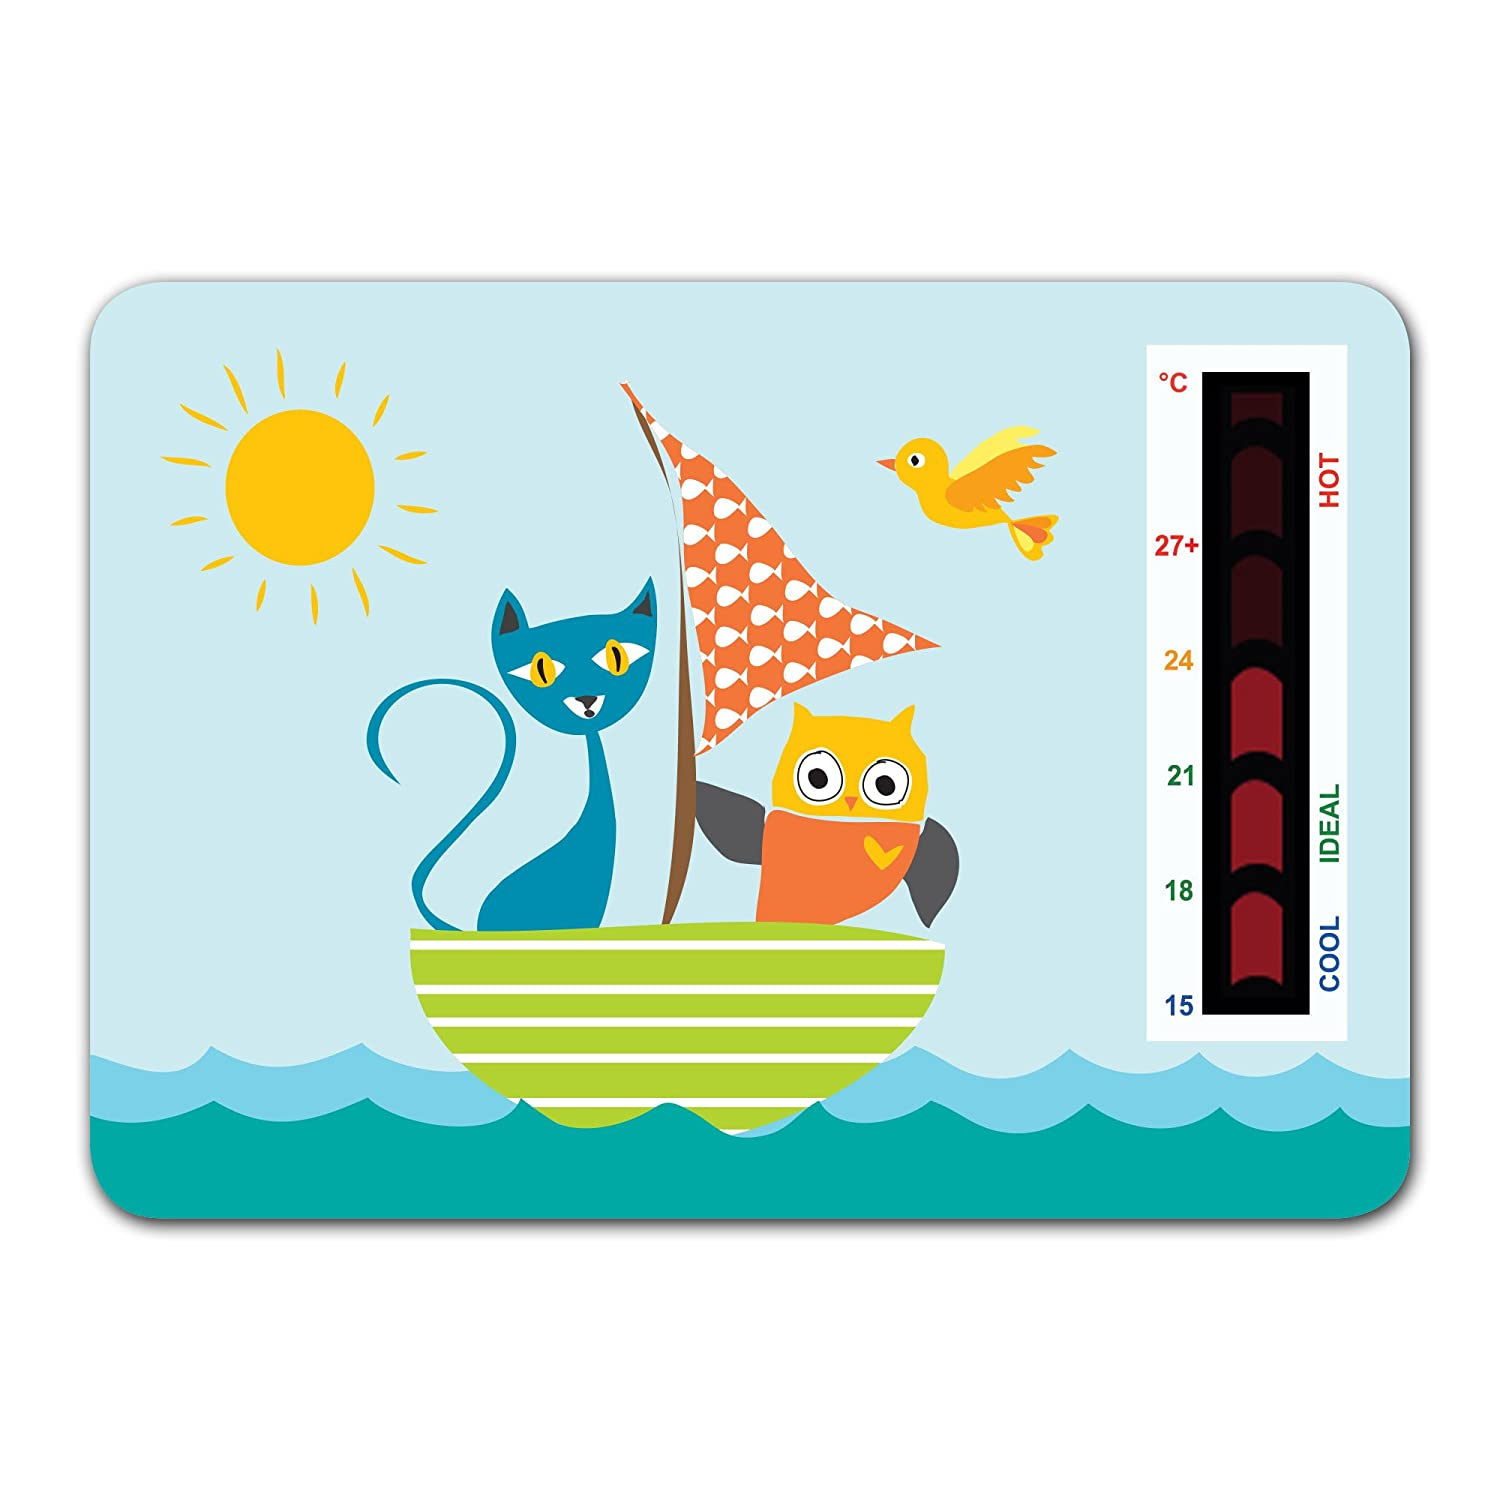 Owl and The Pussycat Nursery Room Safety Temperature Thermometer With New Moving Line Technology Good Life Innovations Baby Thermometer oandthep